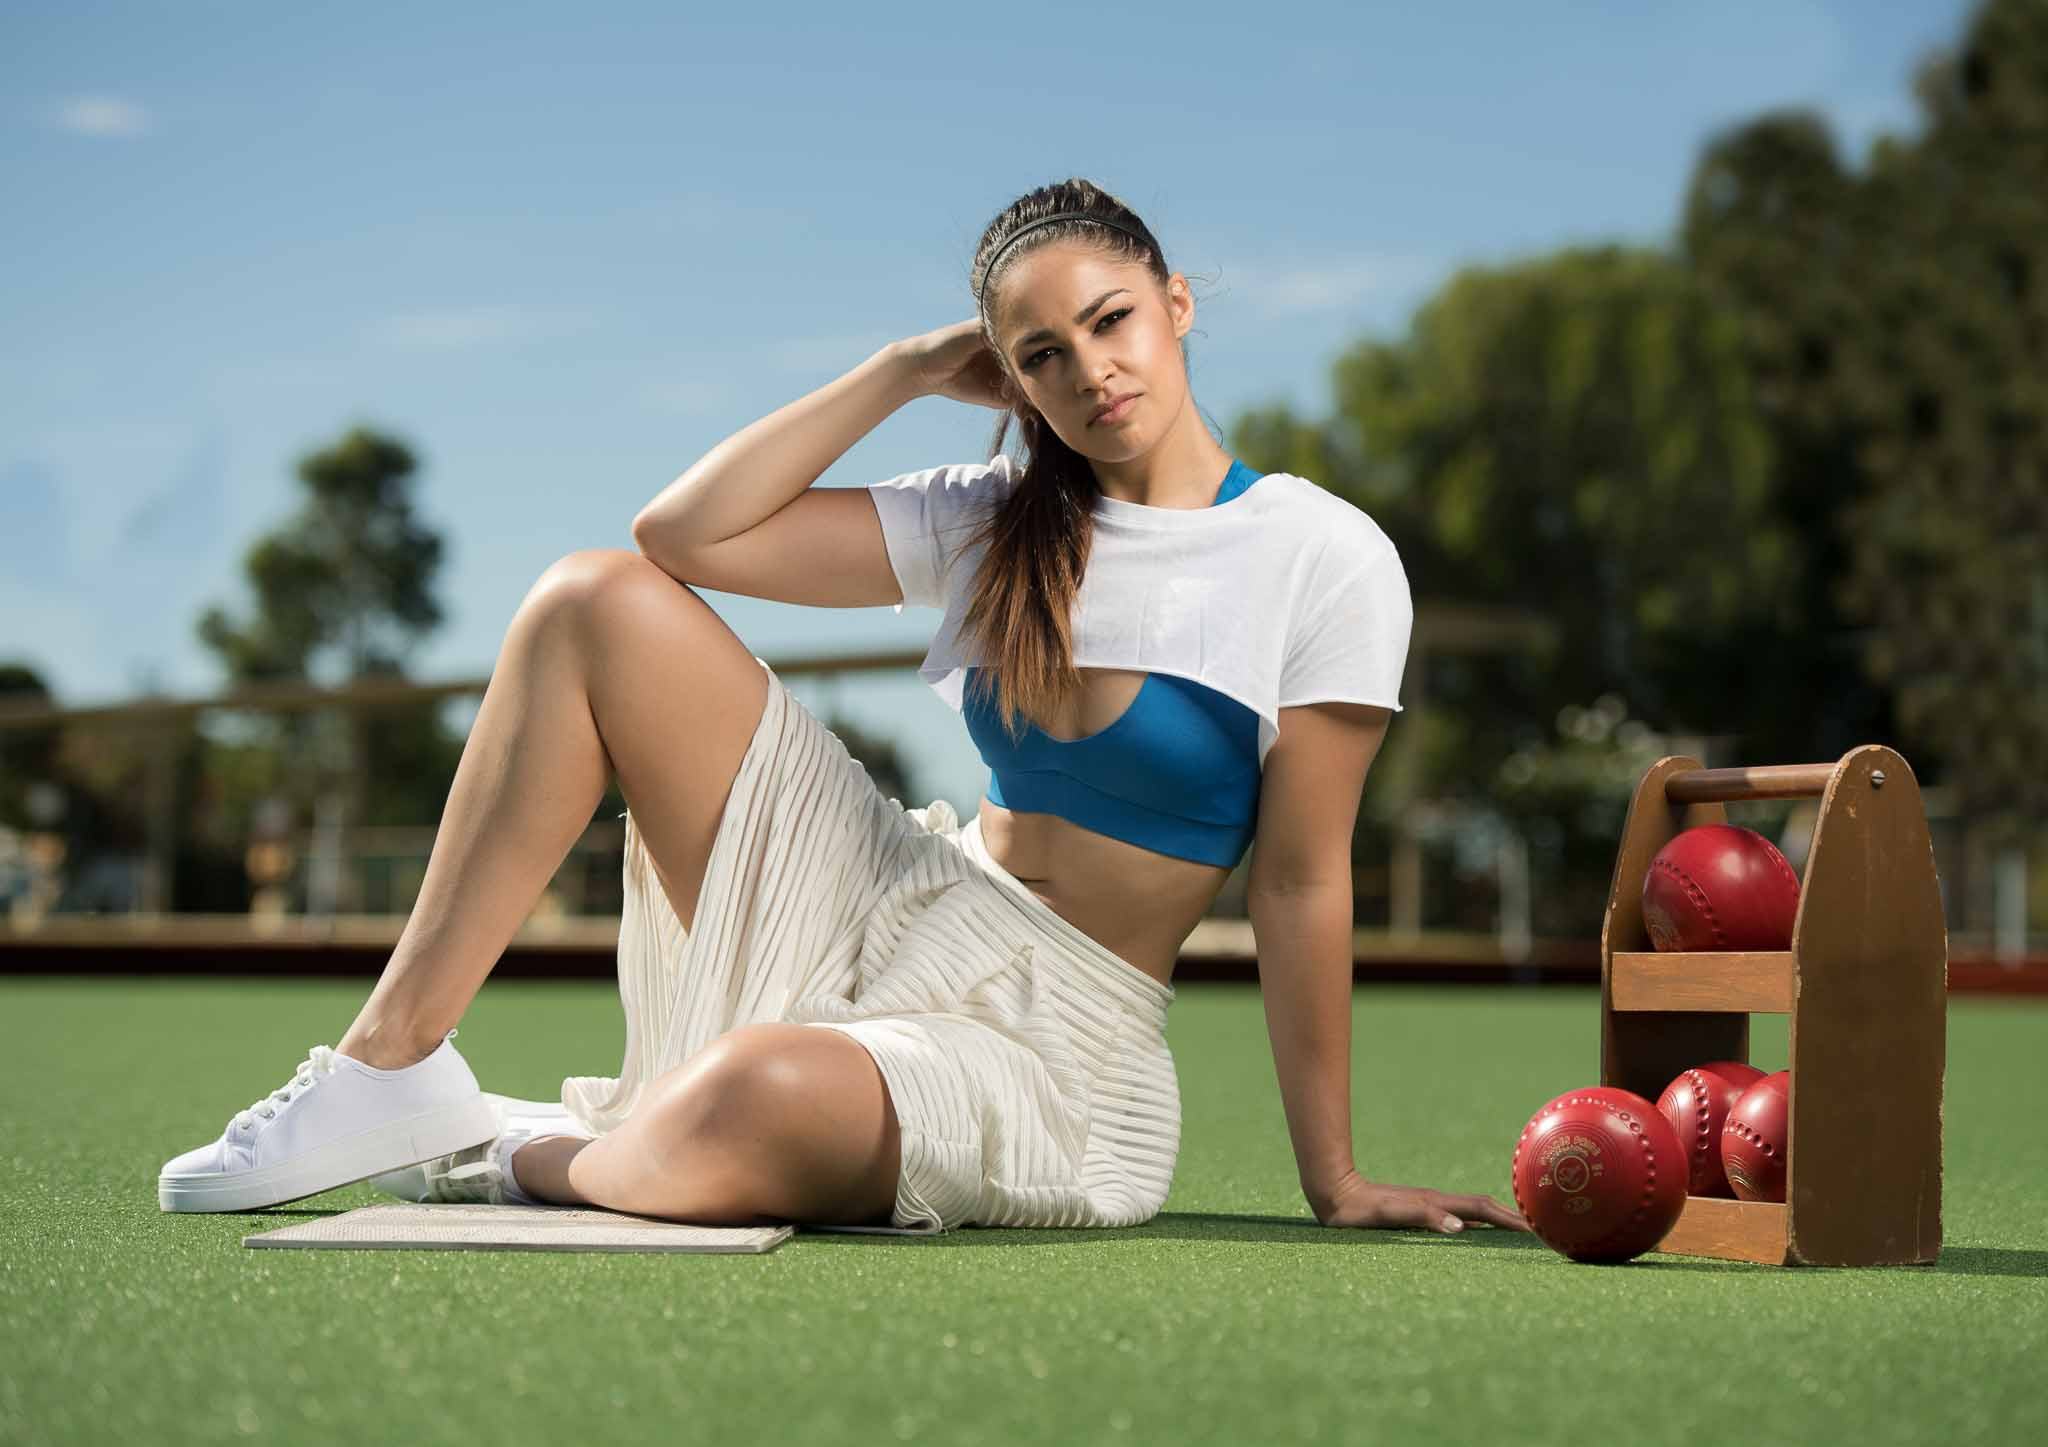 Karina Perth's female fitness talent seated on lawn bowls green